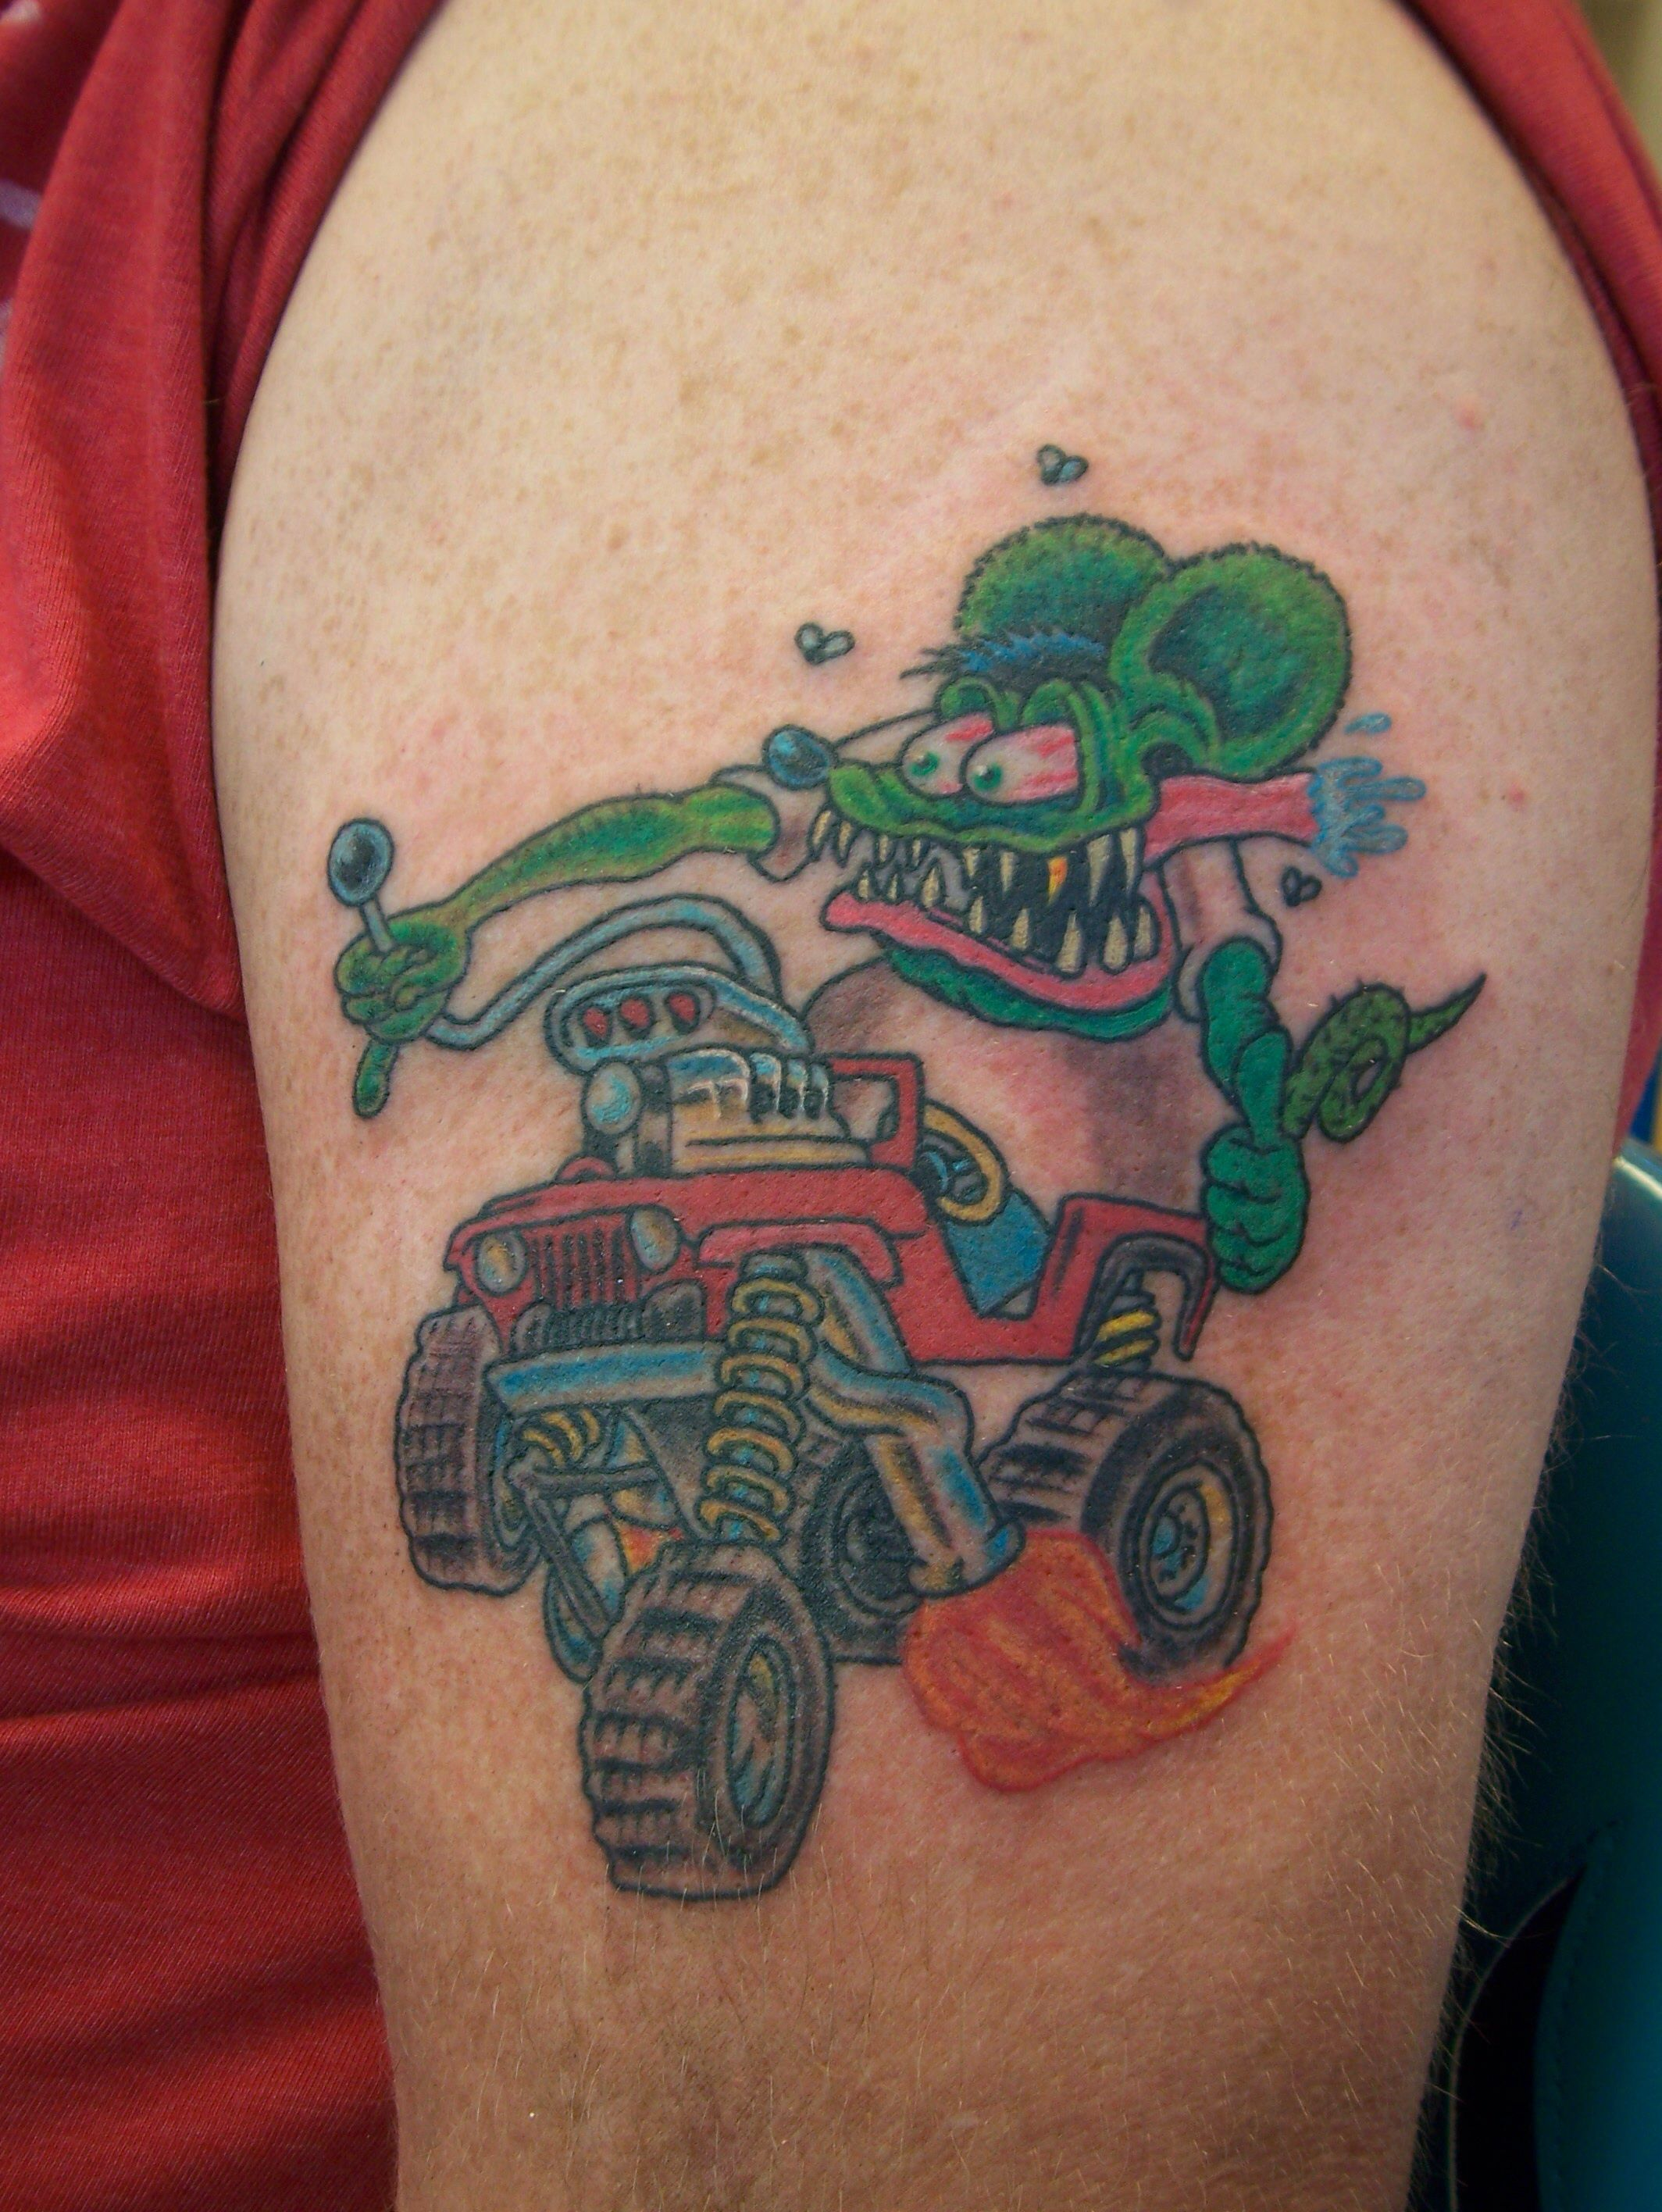 rev tulsa tattoo co rat fink big daddy ed roth hot rod jeep tattoo rev tulsa tattoo co. Black Bedroom Furniture Sets. Home Design Ideas